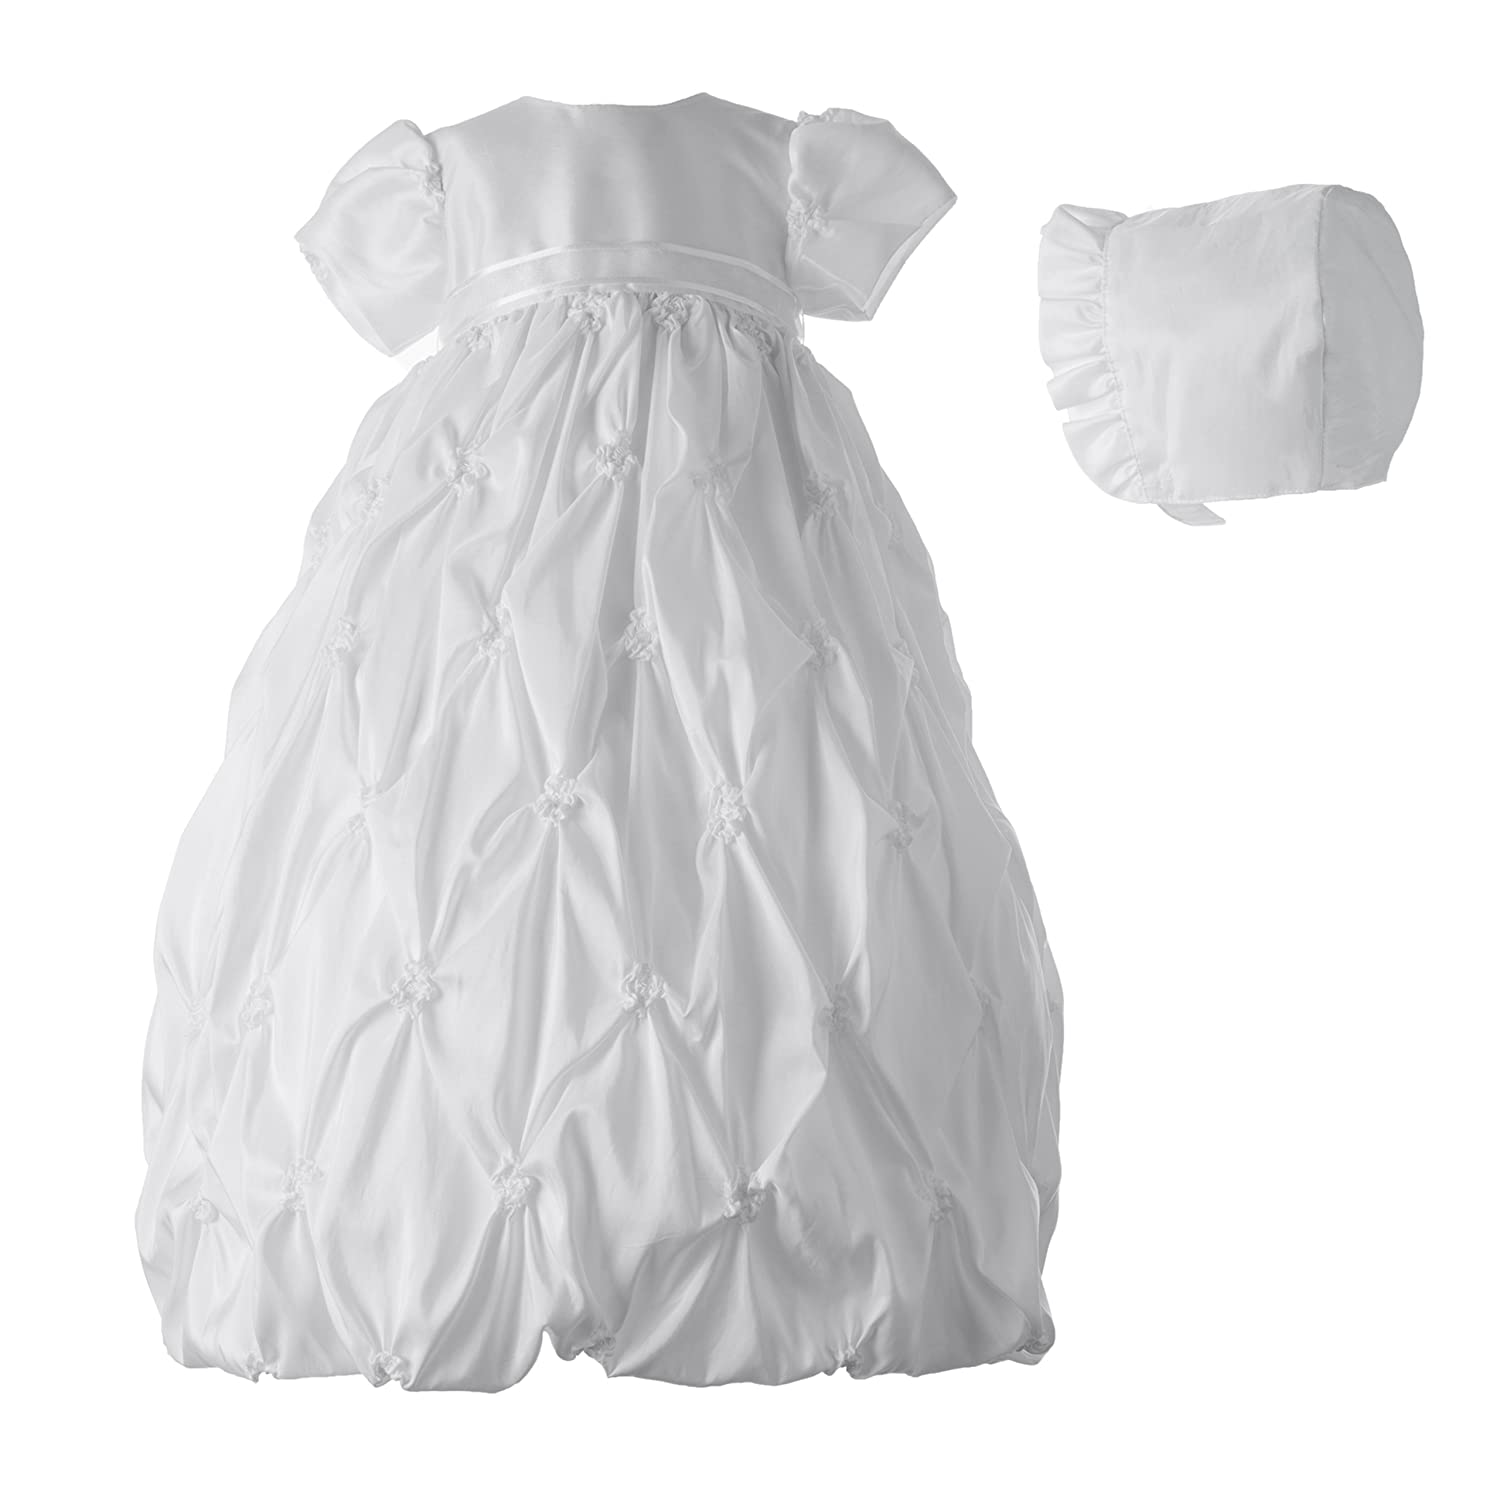 Amazon.com: Lauren Madison baby girl Christening Baptism Newborn ...